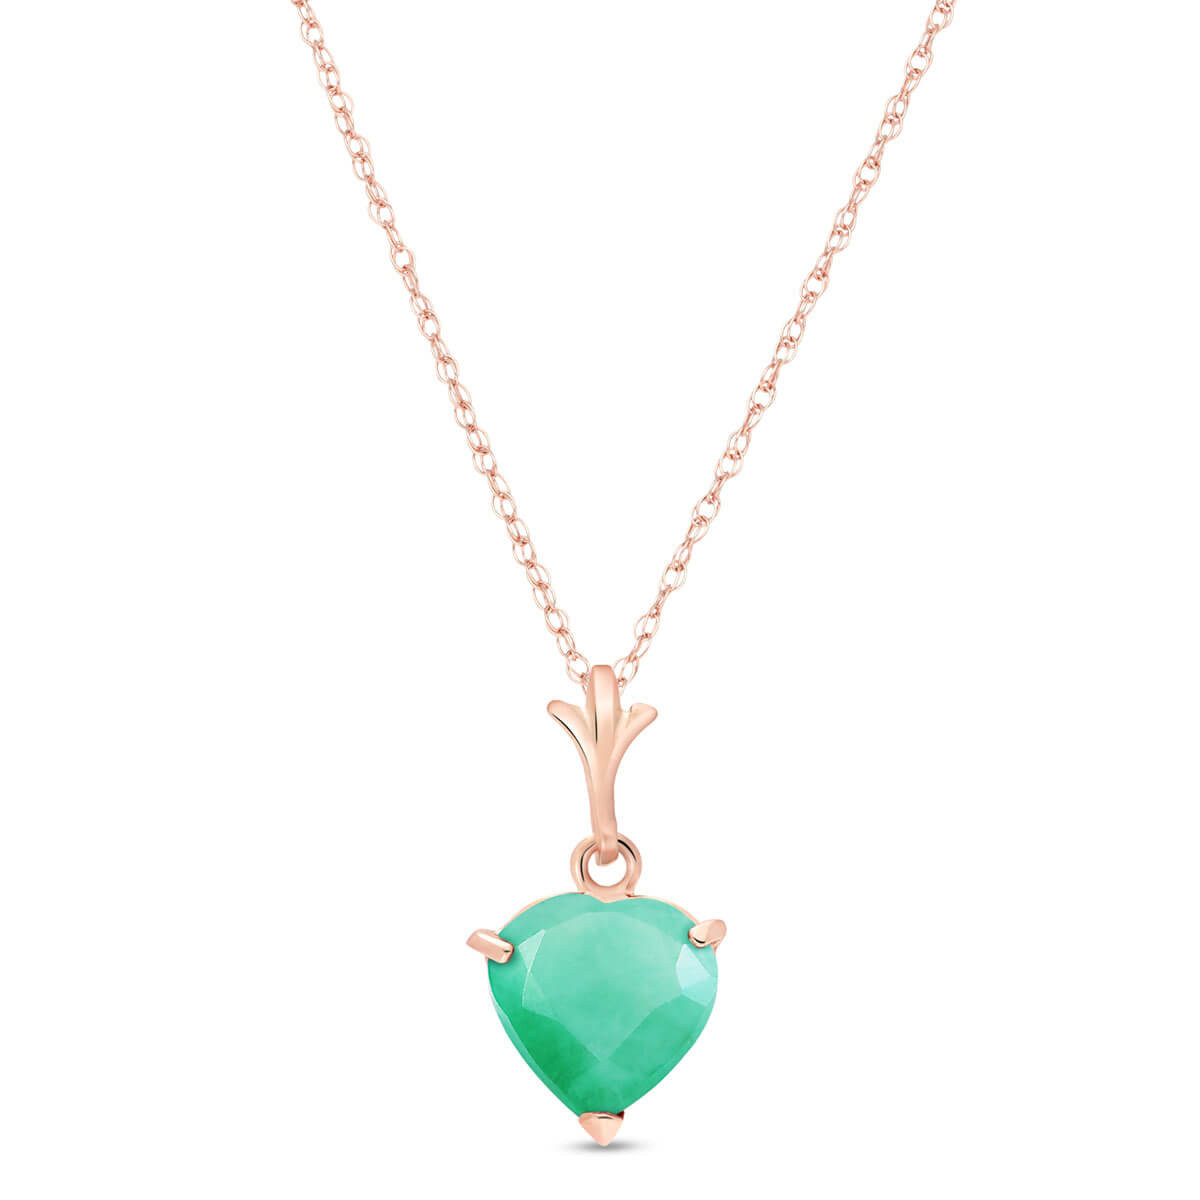 Emerald Heart Pendant Necklace 1.2 ct in 9ct Rose Gold